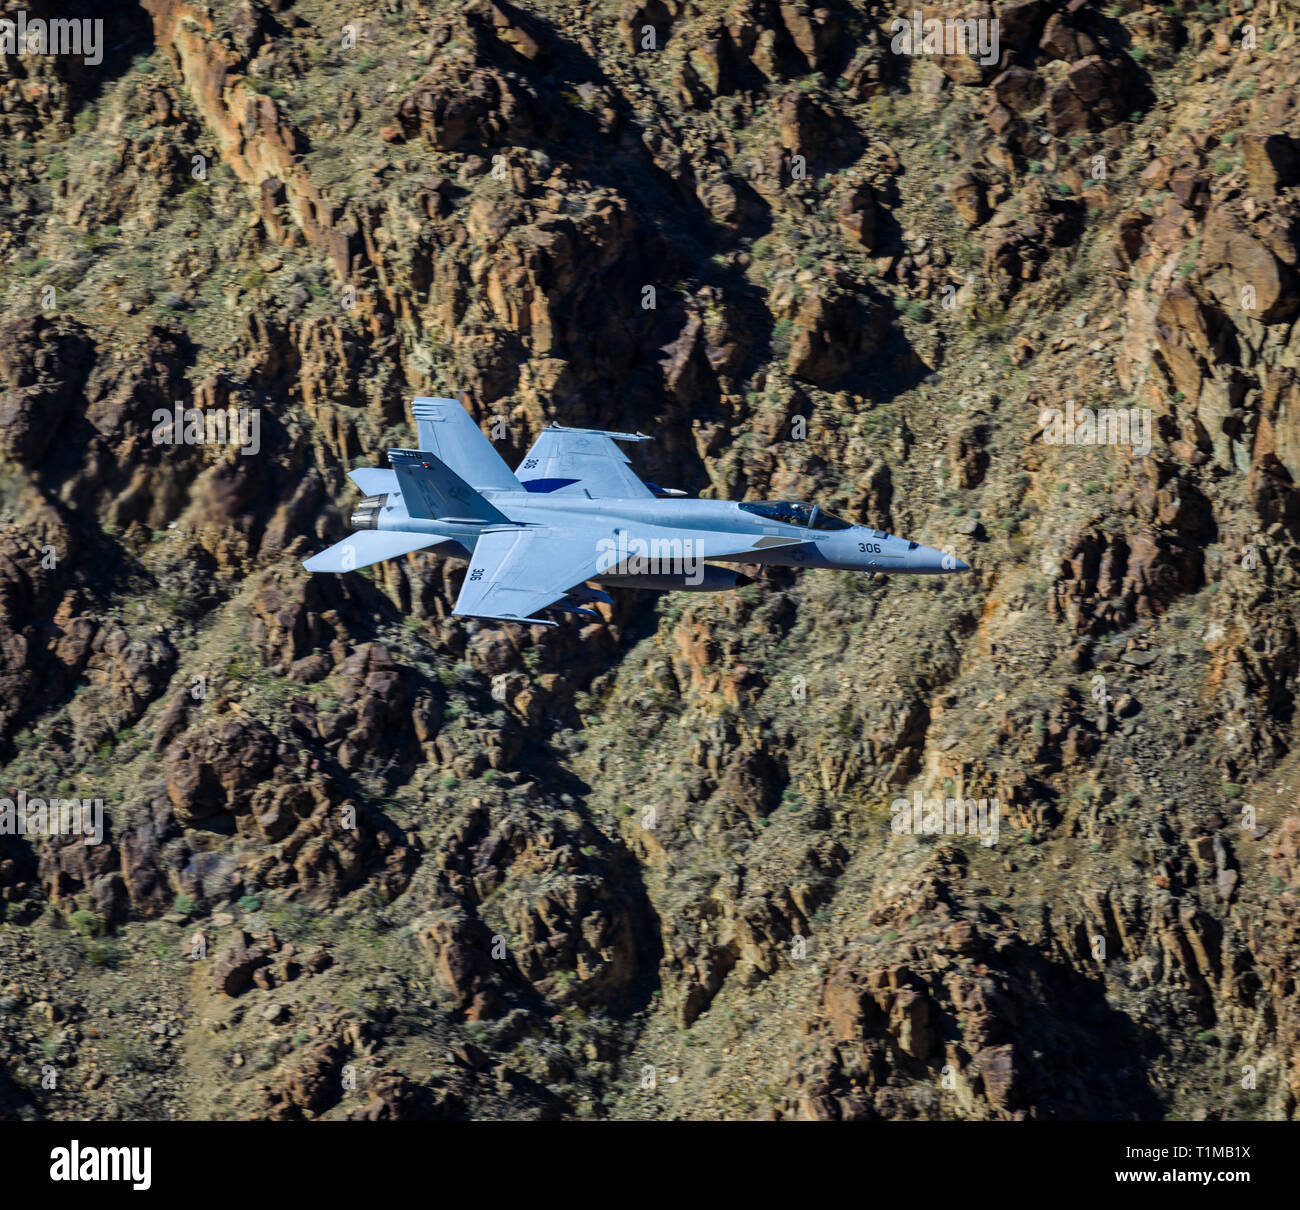 In this shot a Boeing F/A-18C Super Hornet makes a run through Rainbow/Star Wars Canyon in Death Valley National Park, California, USA. - Stock Image